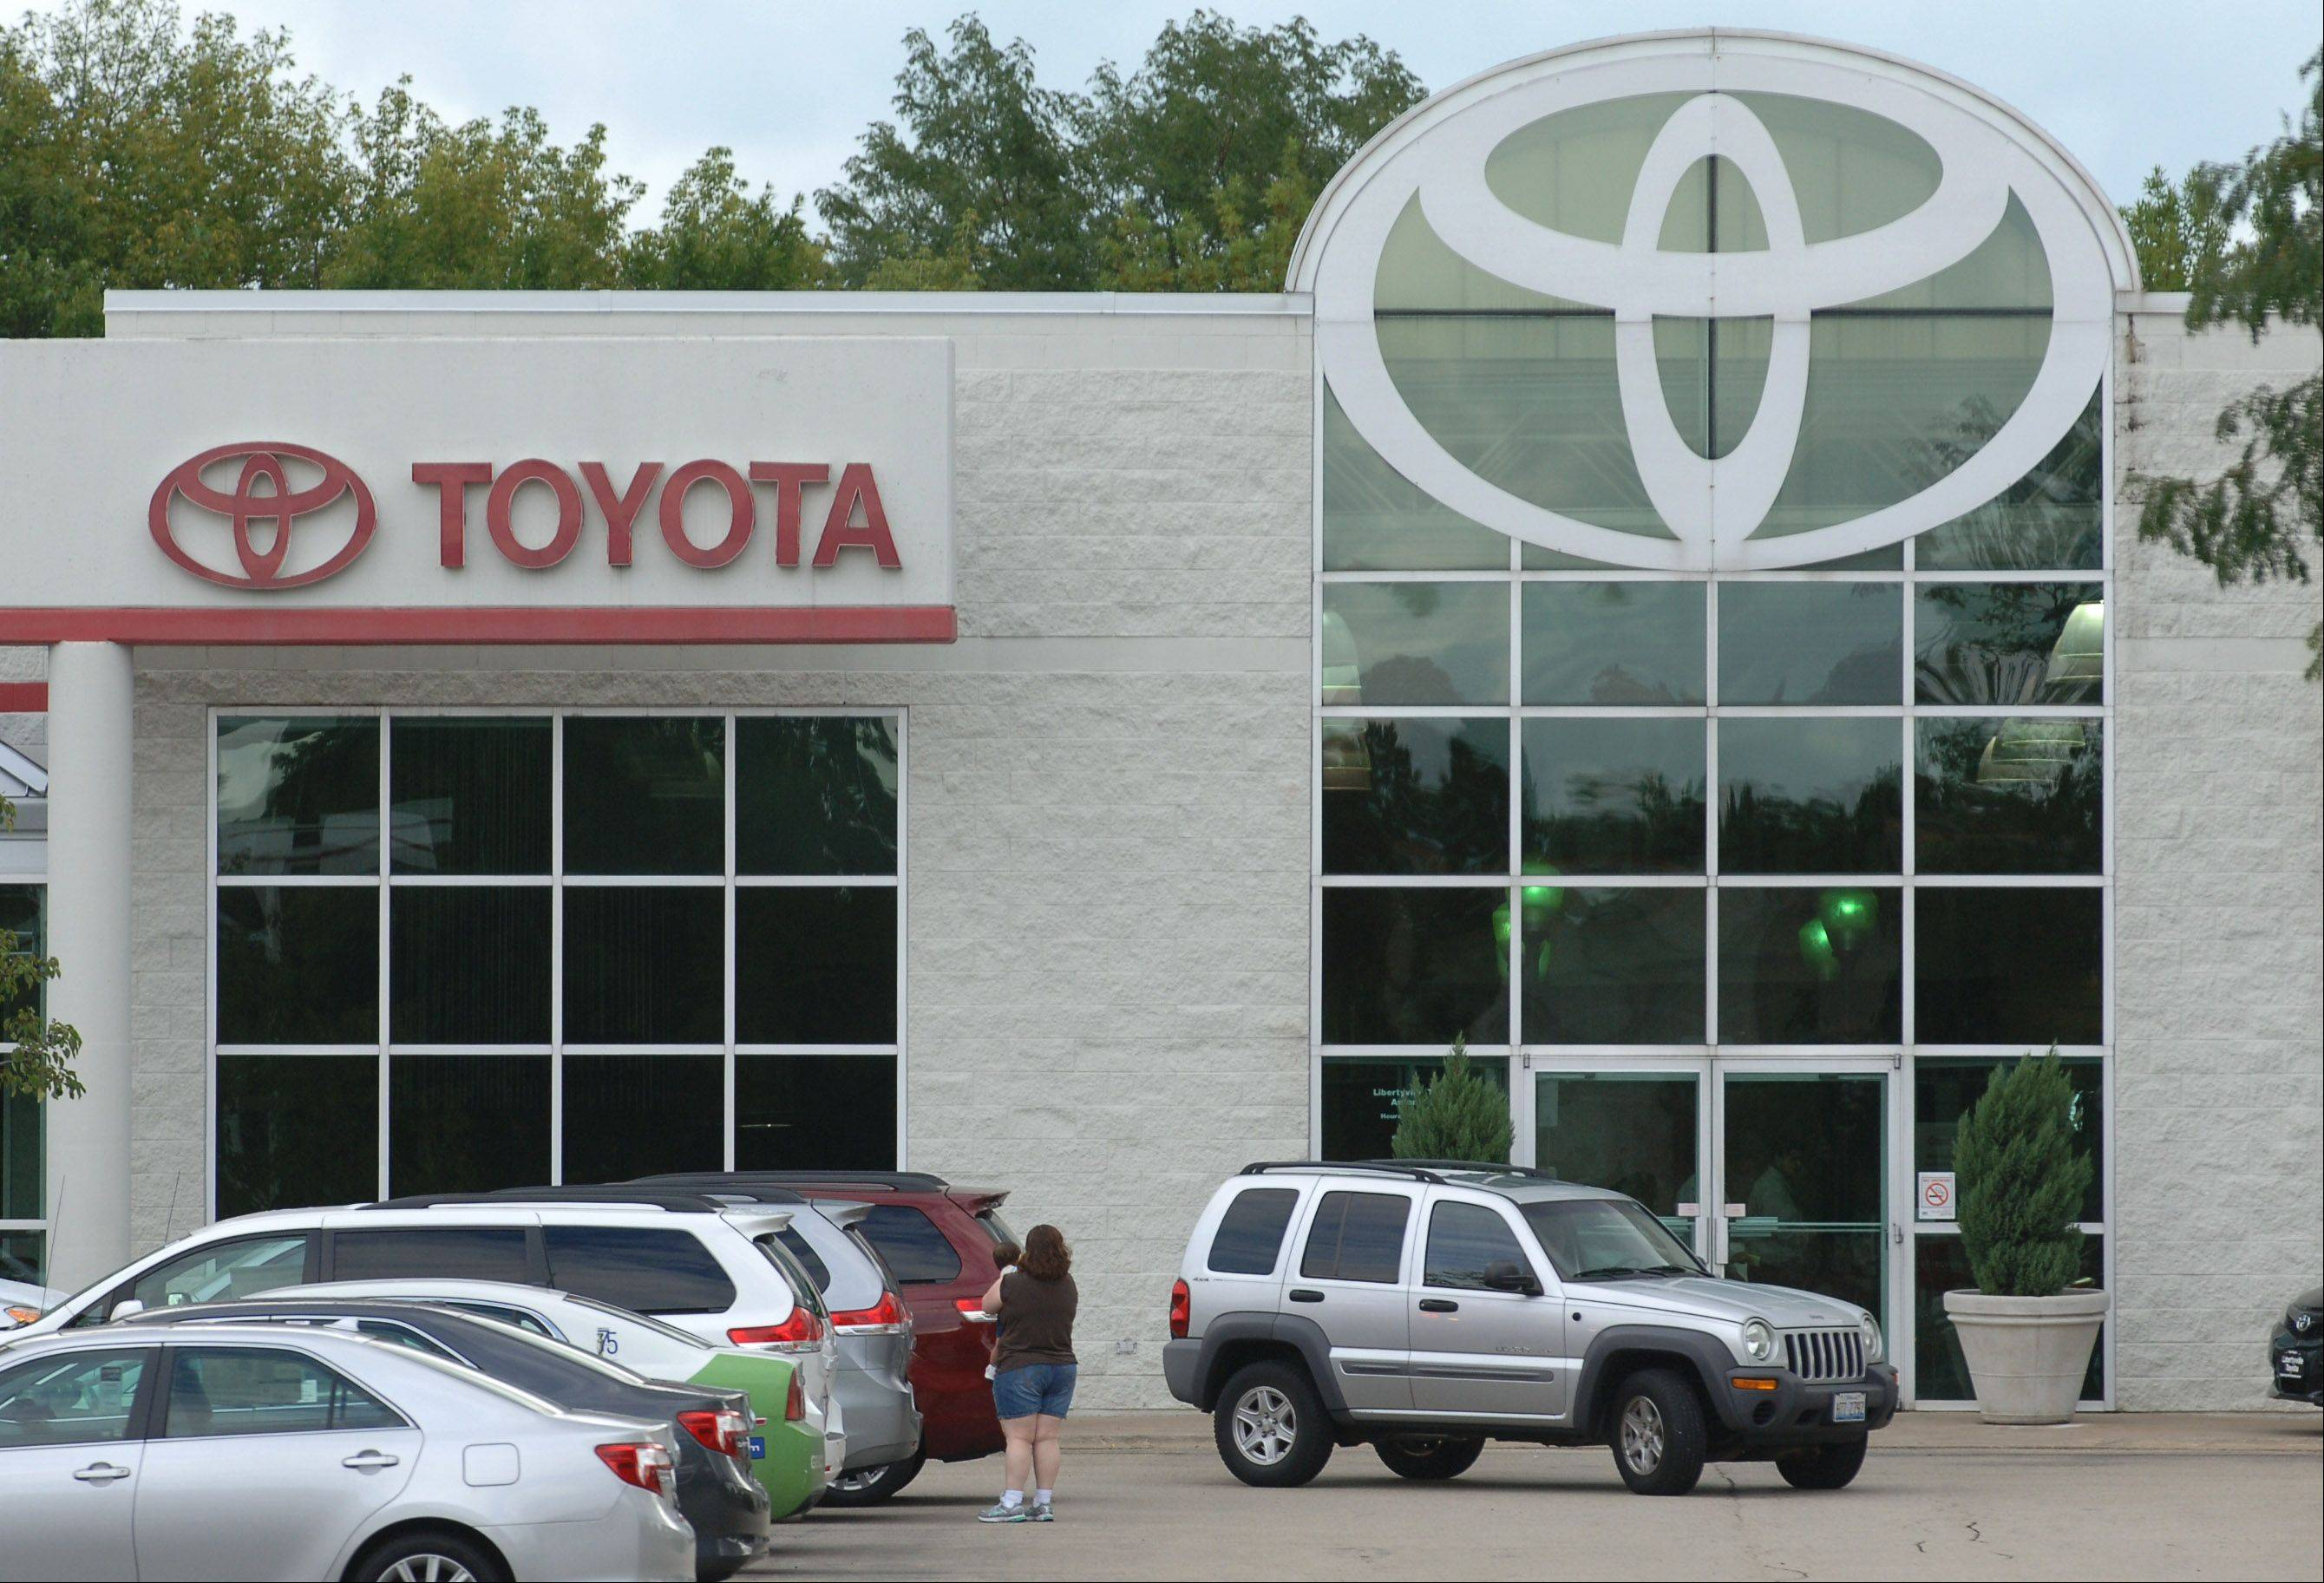 Libertyville Toyota is one of several dealerships in the village pursuing upgrades.